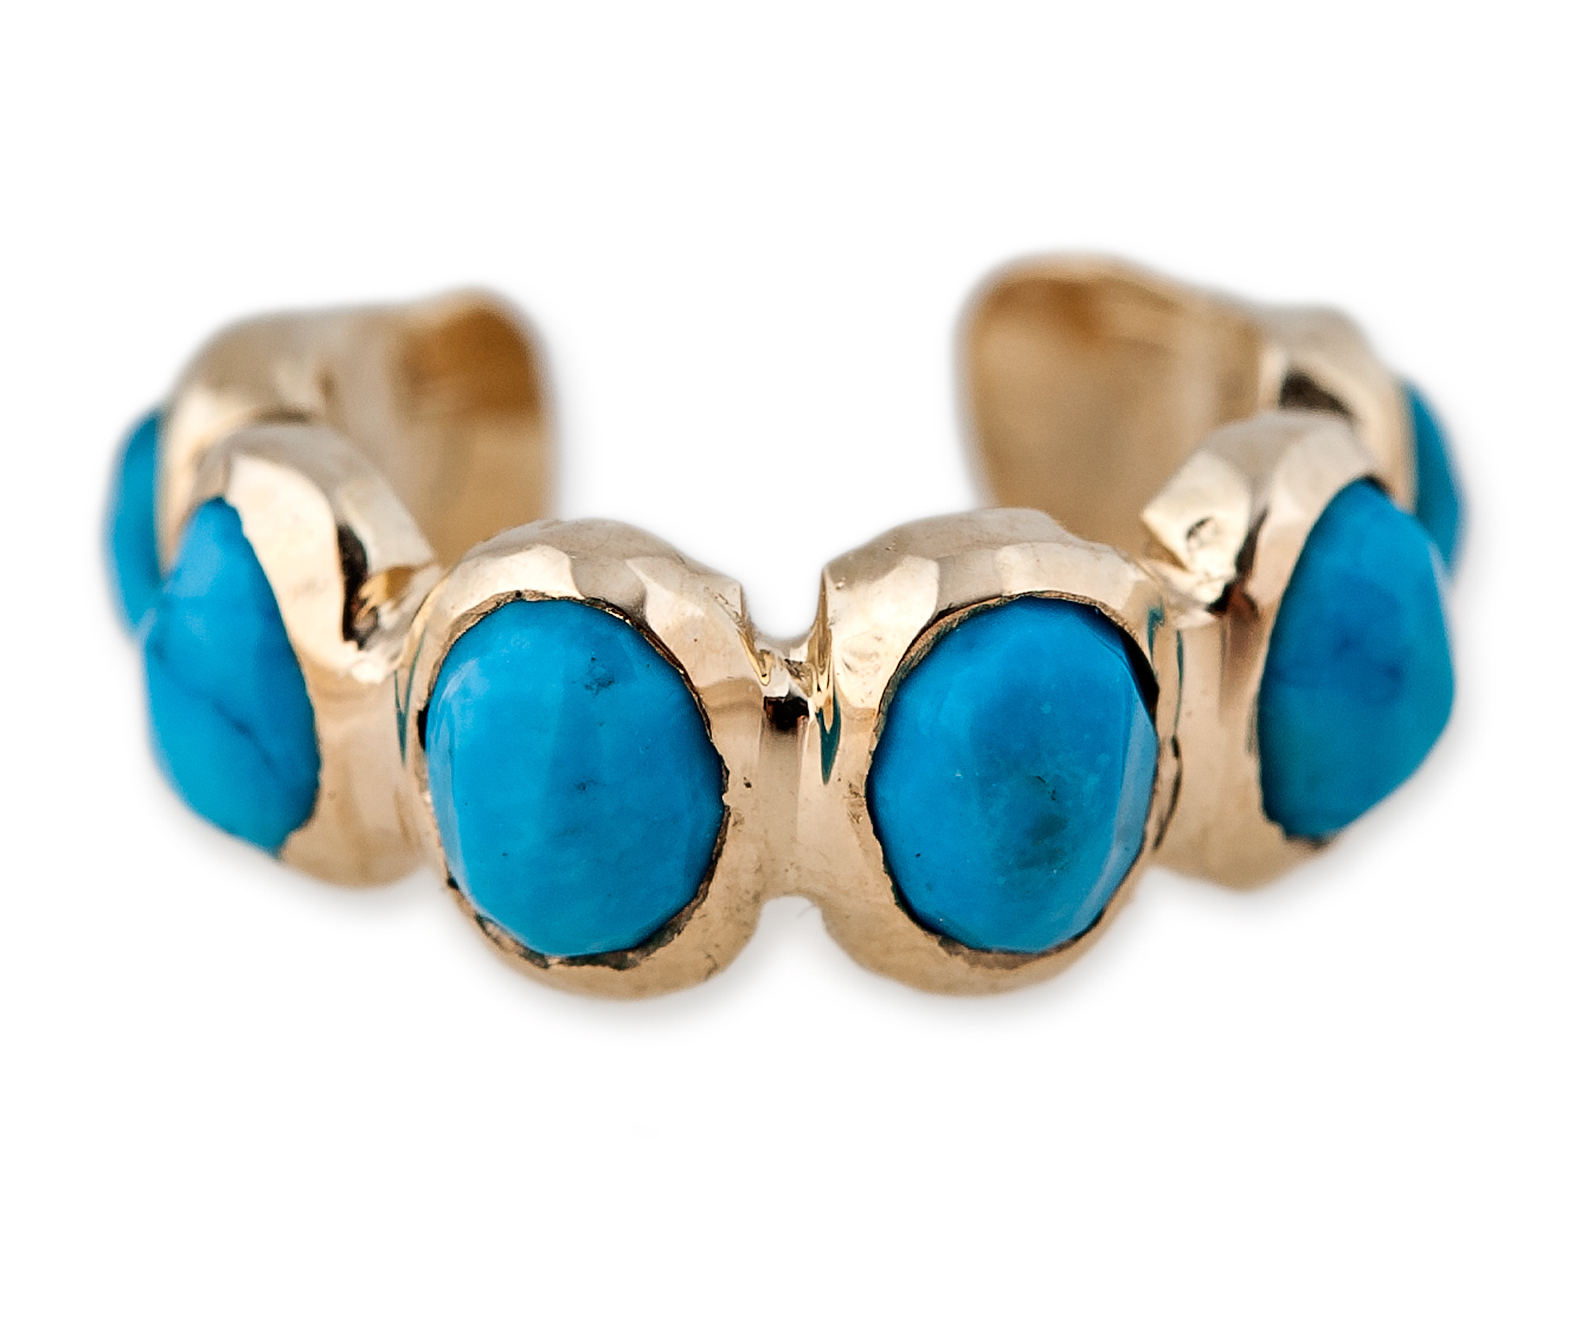 Jacquie Aiche turquoise ear band | JCK On Your Market